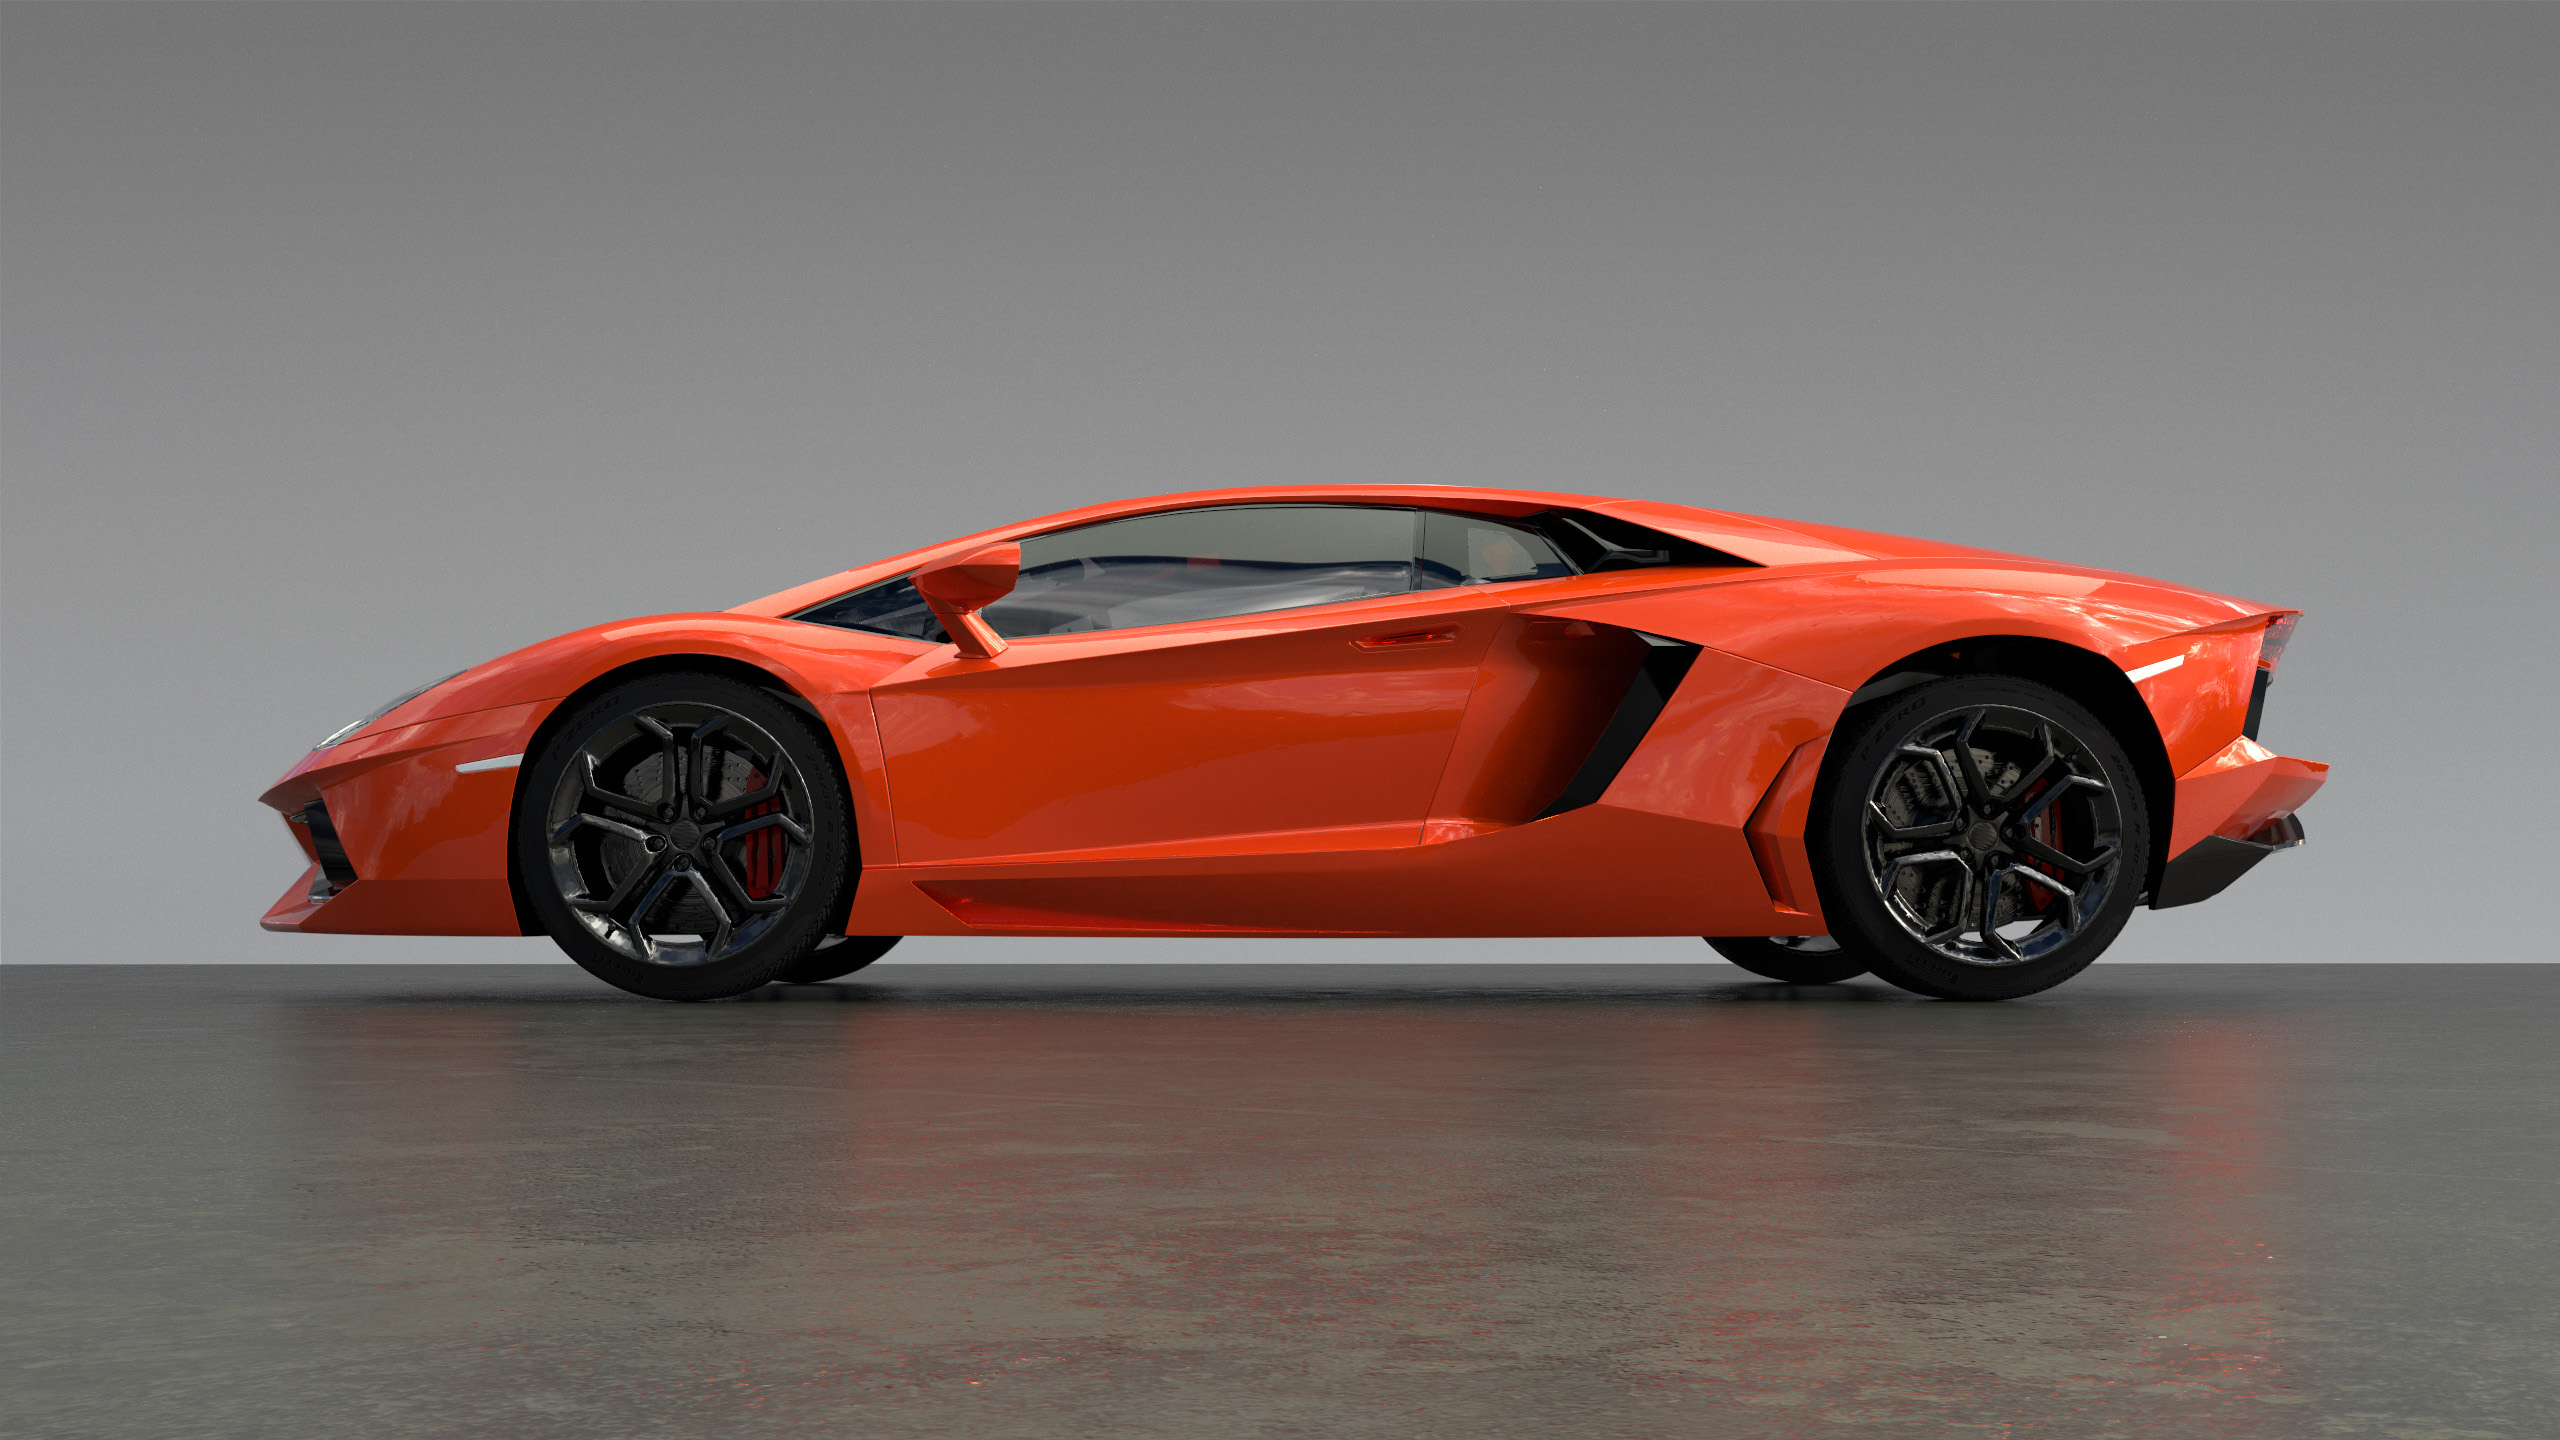 Figure 1: An orange-red Lamborghini Aventador, rendered in Takua a0.7 using VCM.